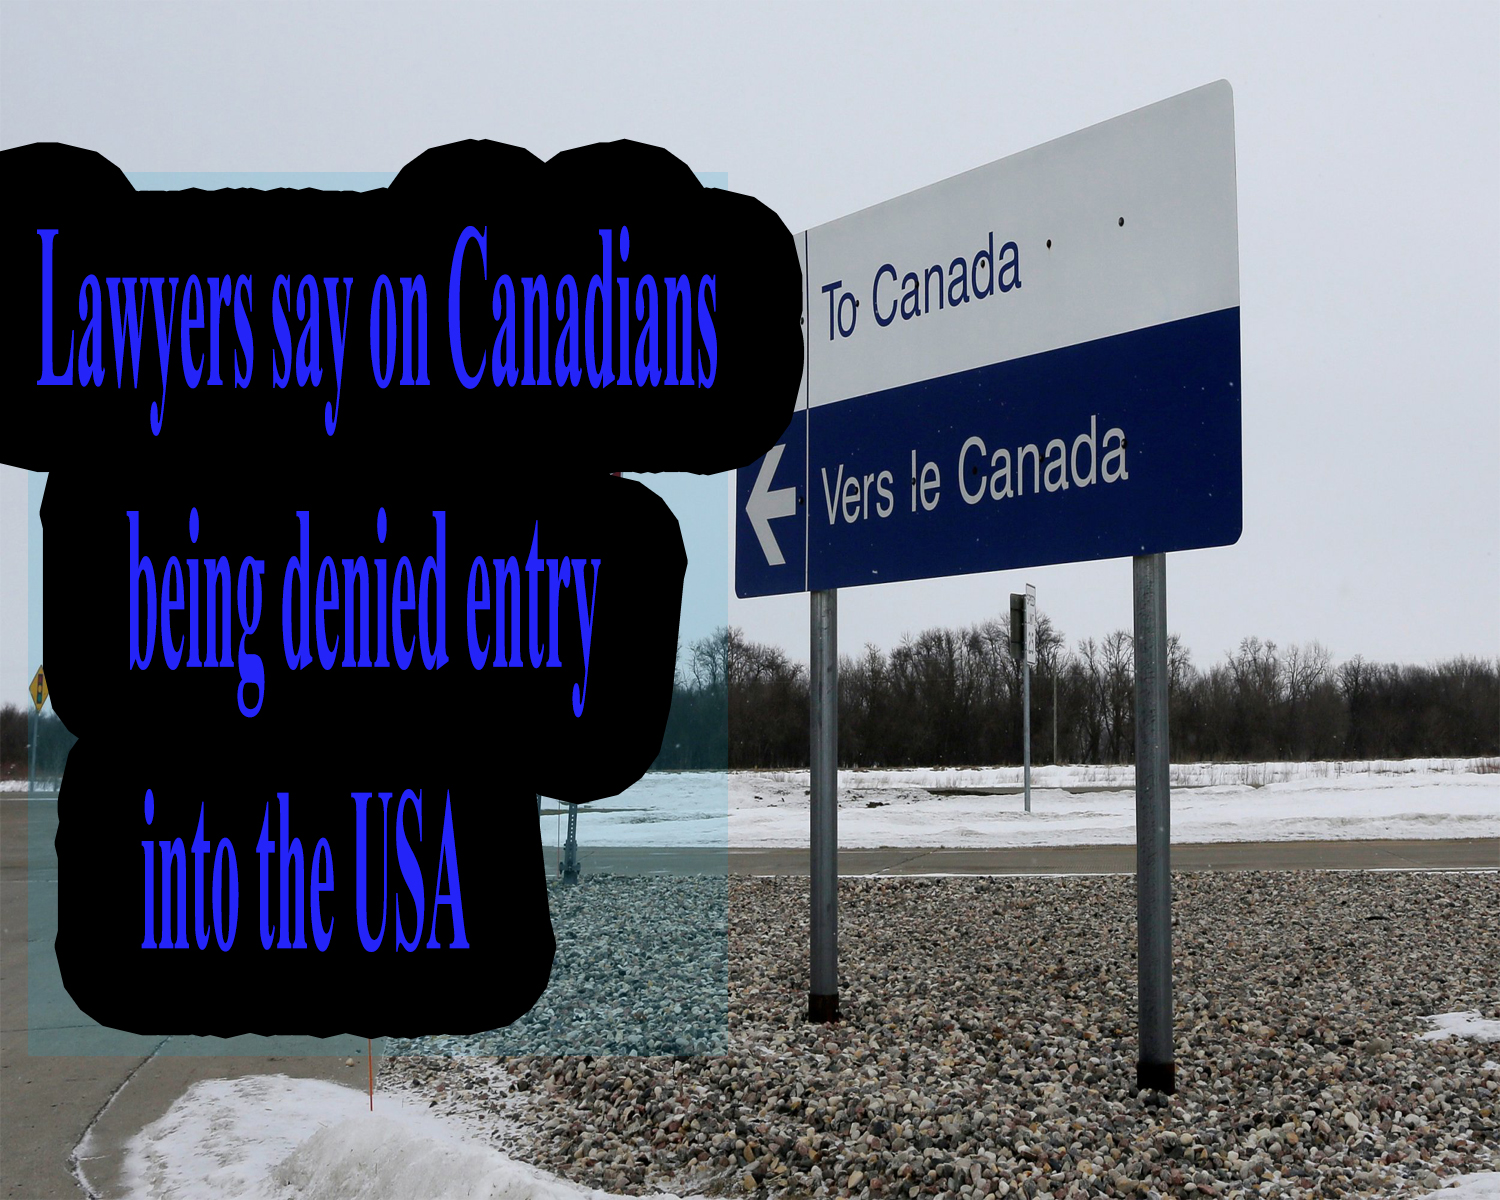 Lawyers say on Canadians being denied entry into the USA